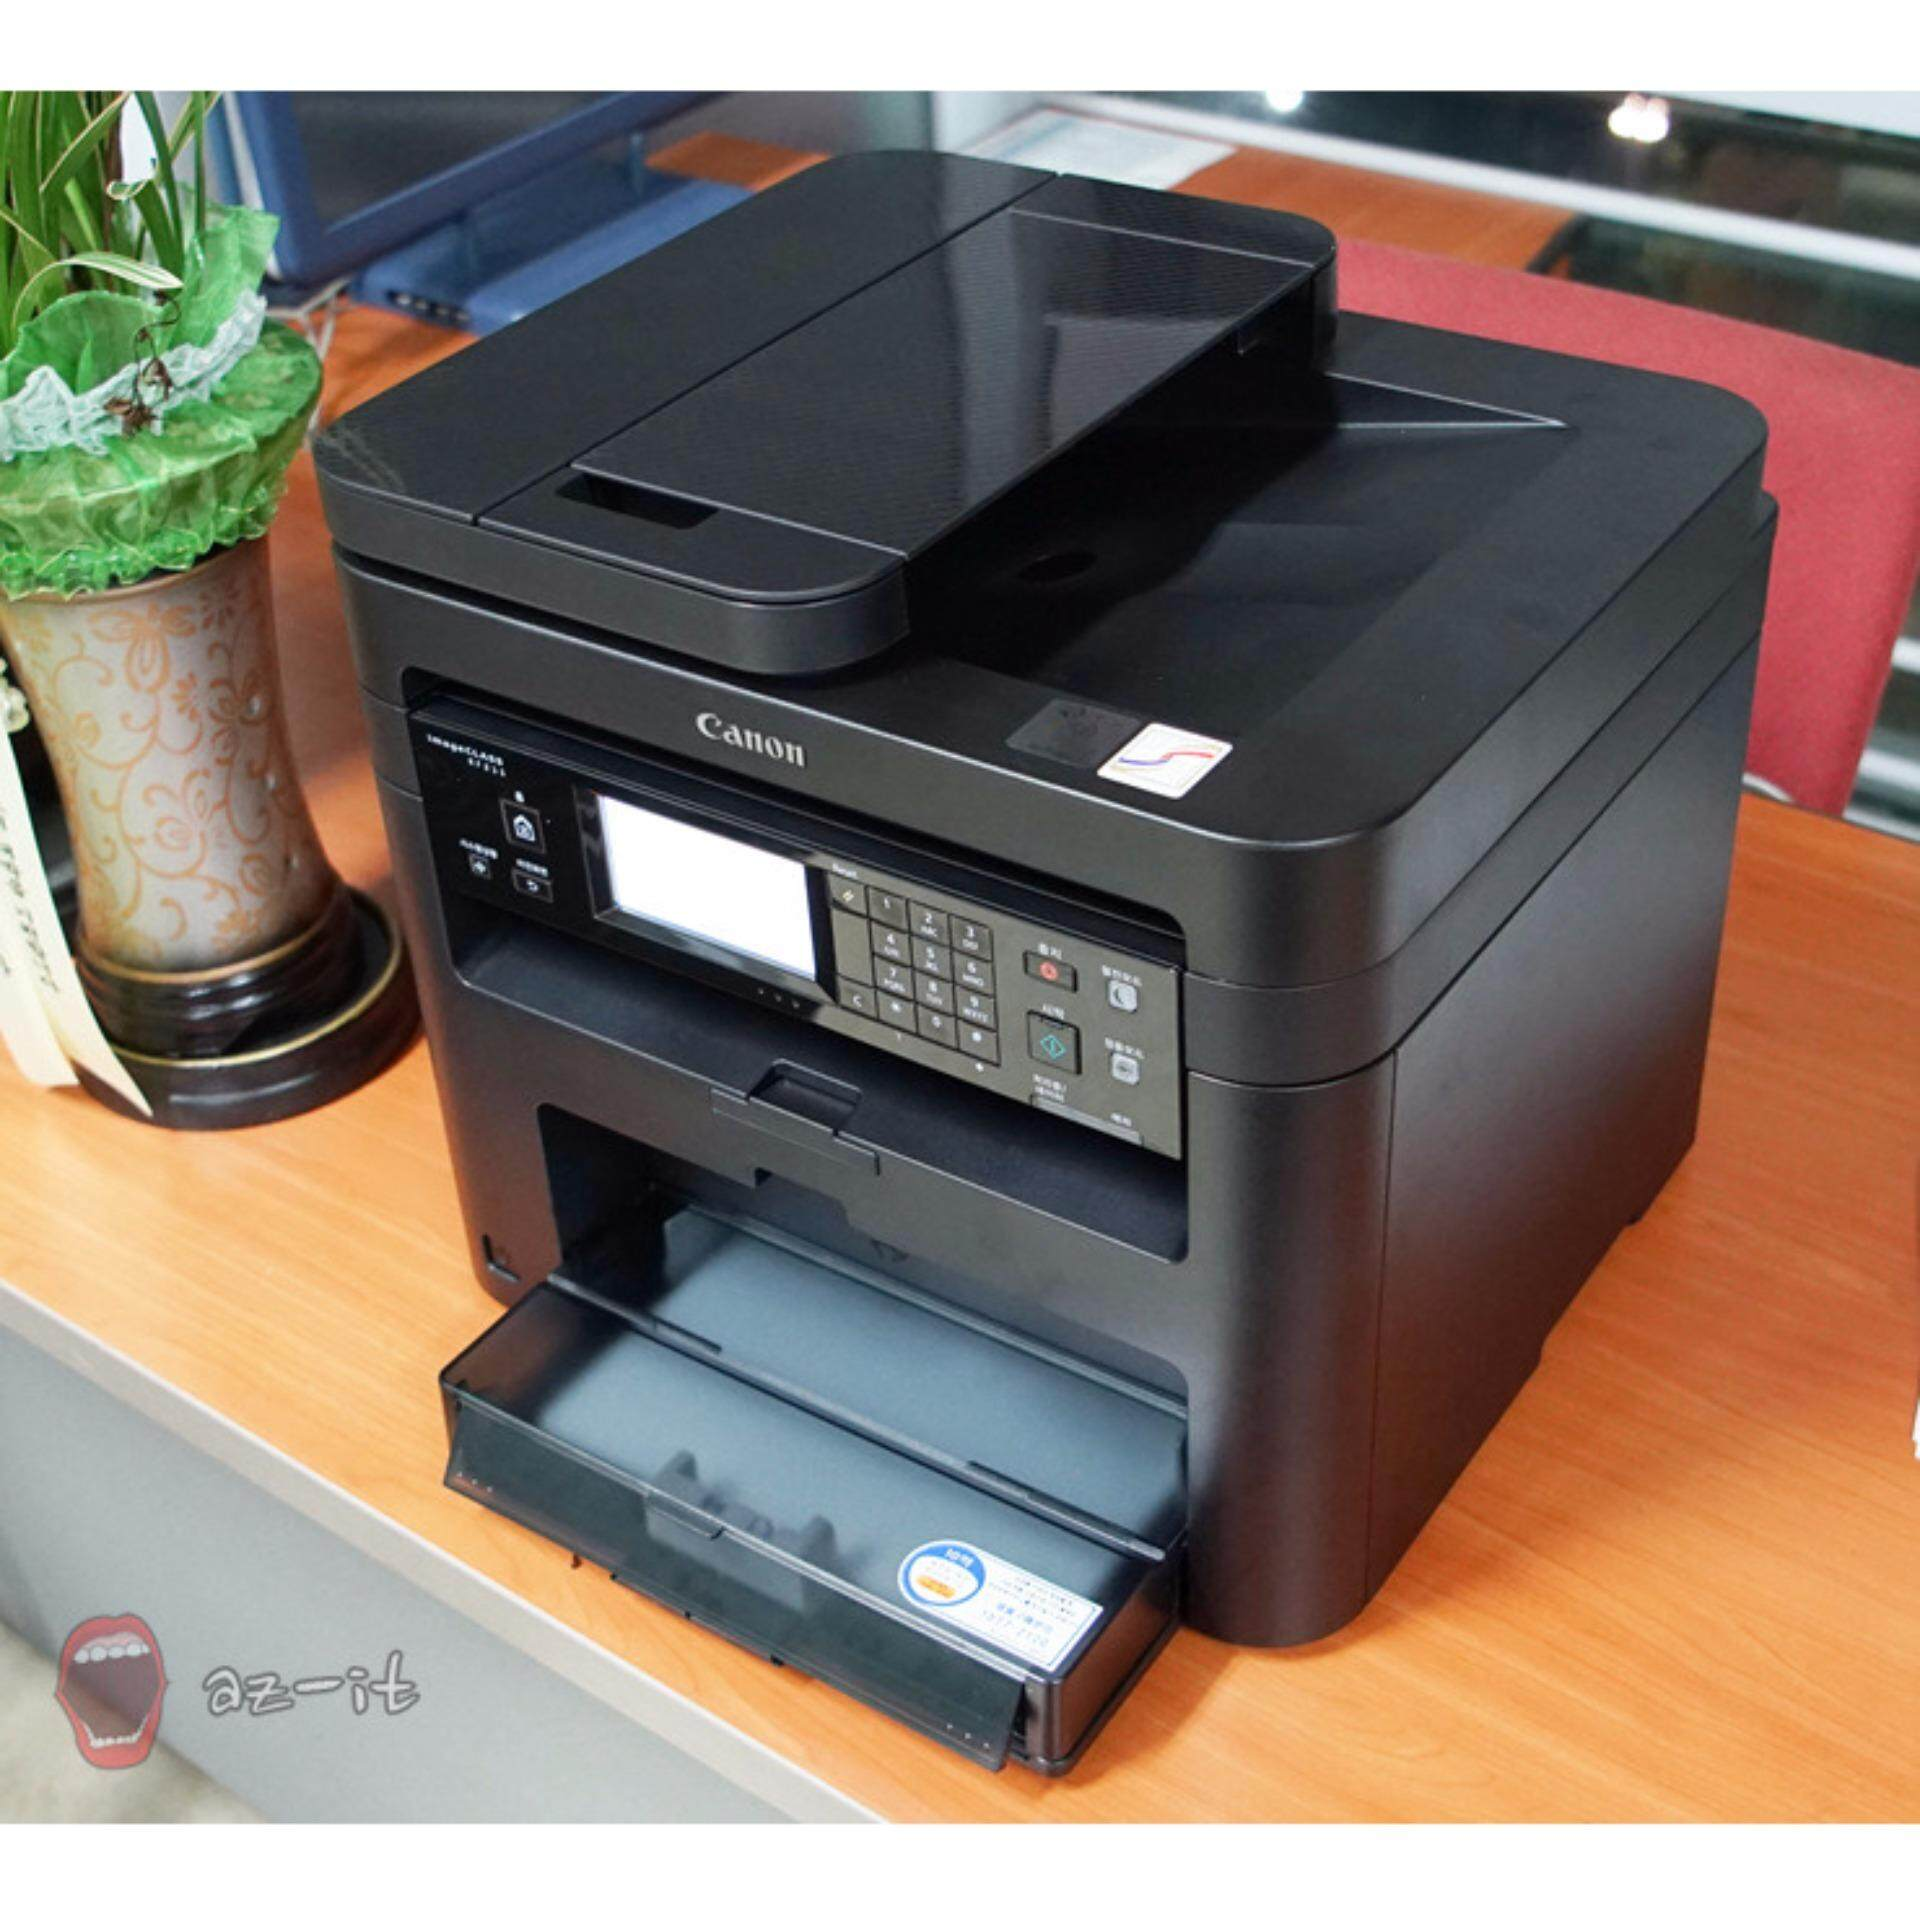 CANON MF215 ALL-IN-ONE LASER PRINTER